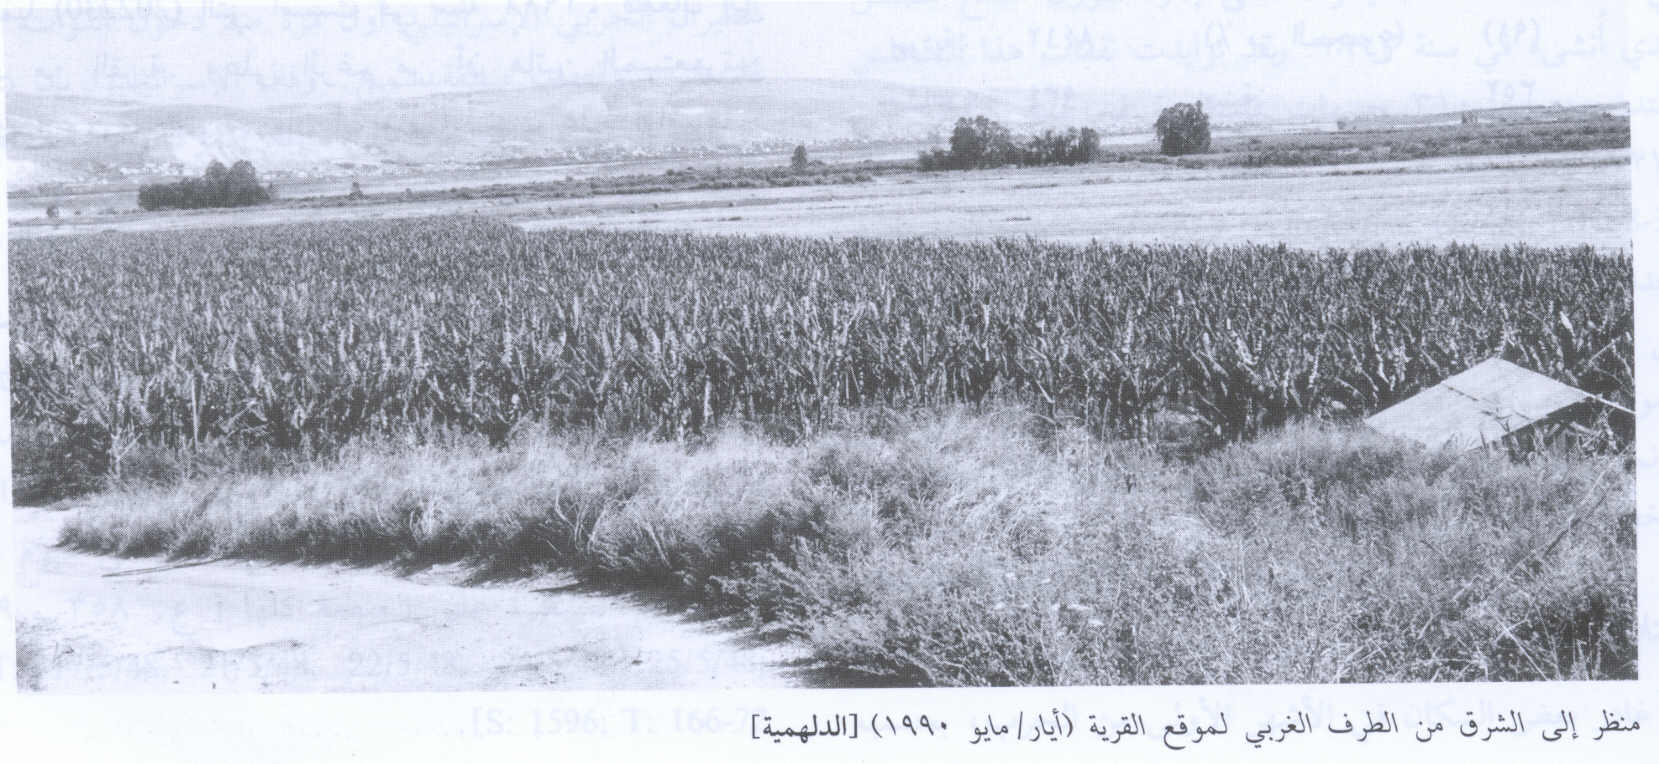 al-Dalhamiyya - الدلهمية : Village Land In 1990